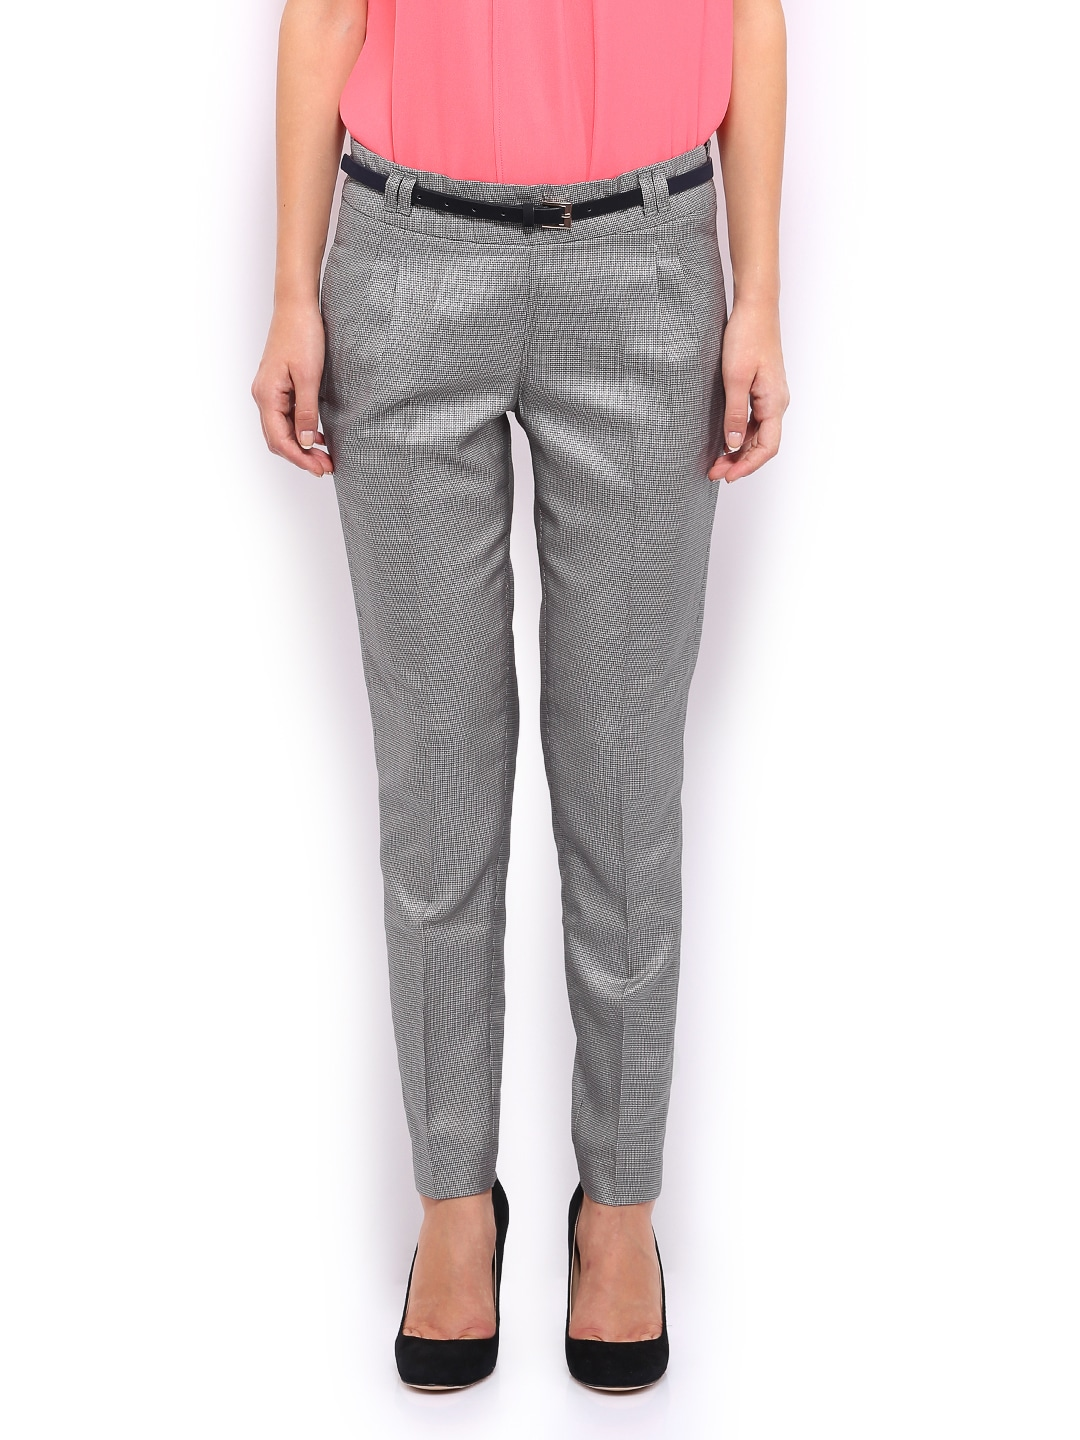 Popular Grey Pants Gray Pants Outfit Casual Gray Leggings Outfit Dress Pants